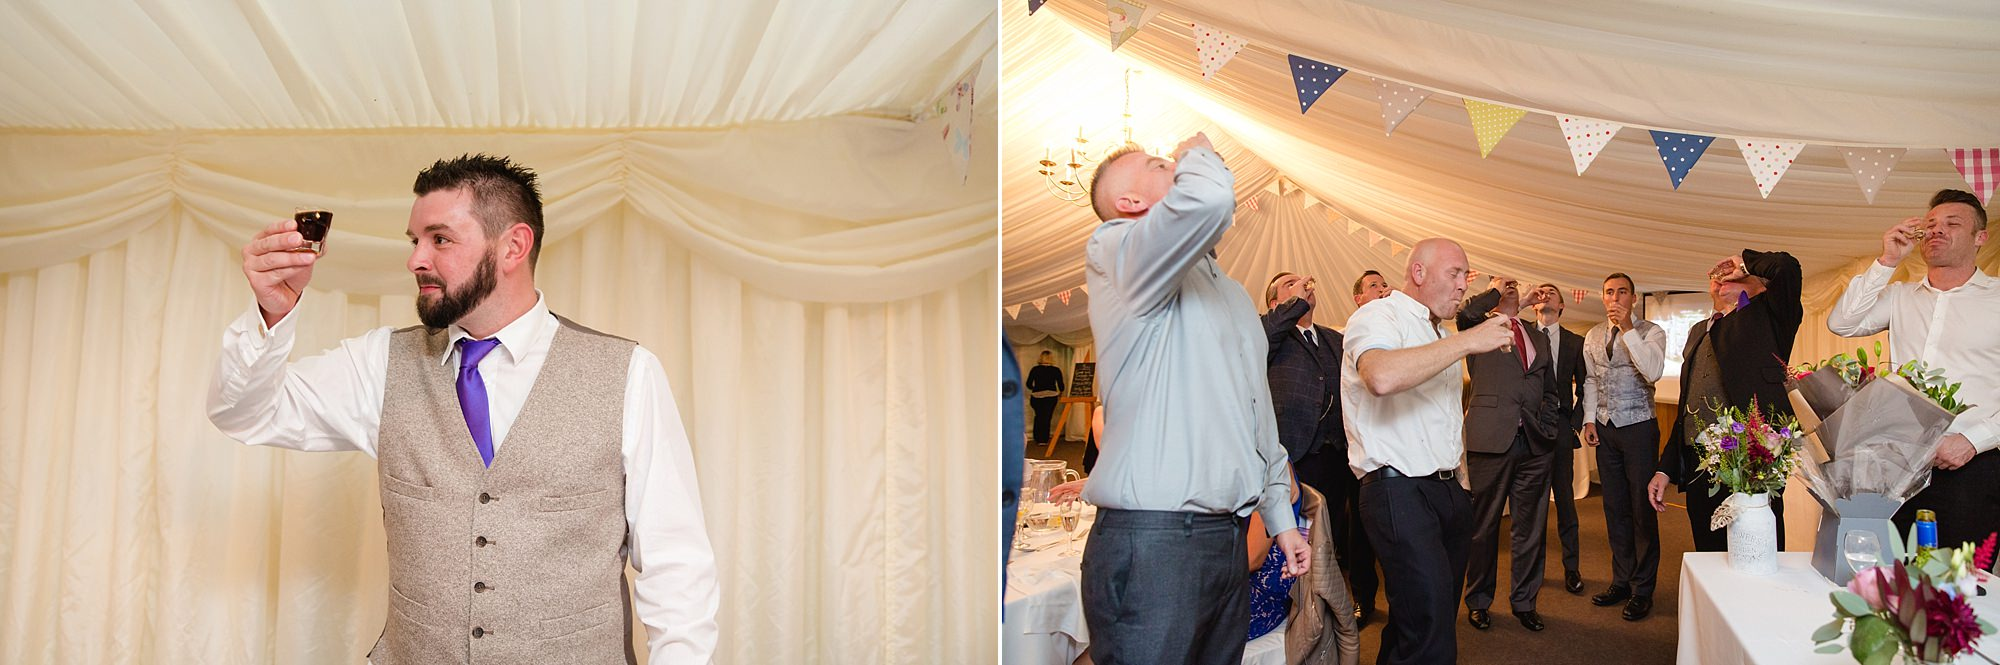 A fun wedding toast with shots during groom's speech